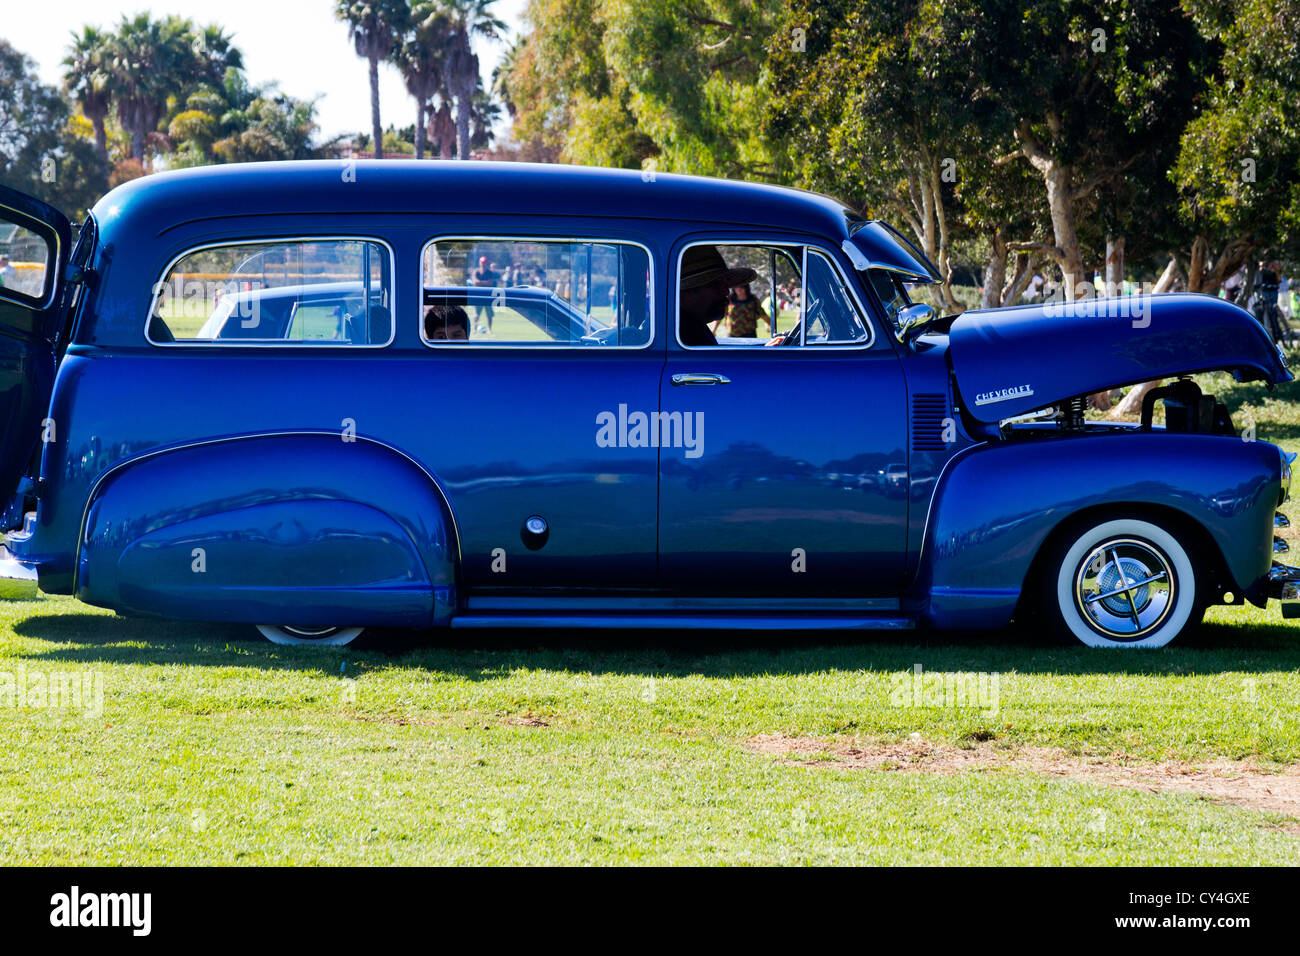 1952 Chevrolet Stock Photos Amp 1952 Chevrolet Stock Images